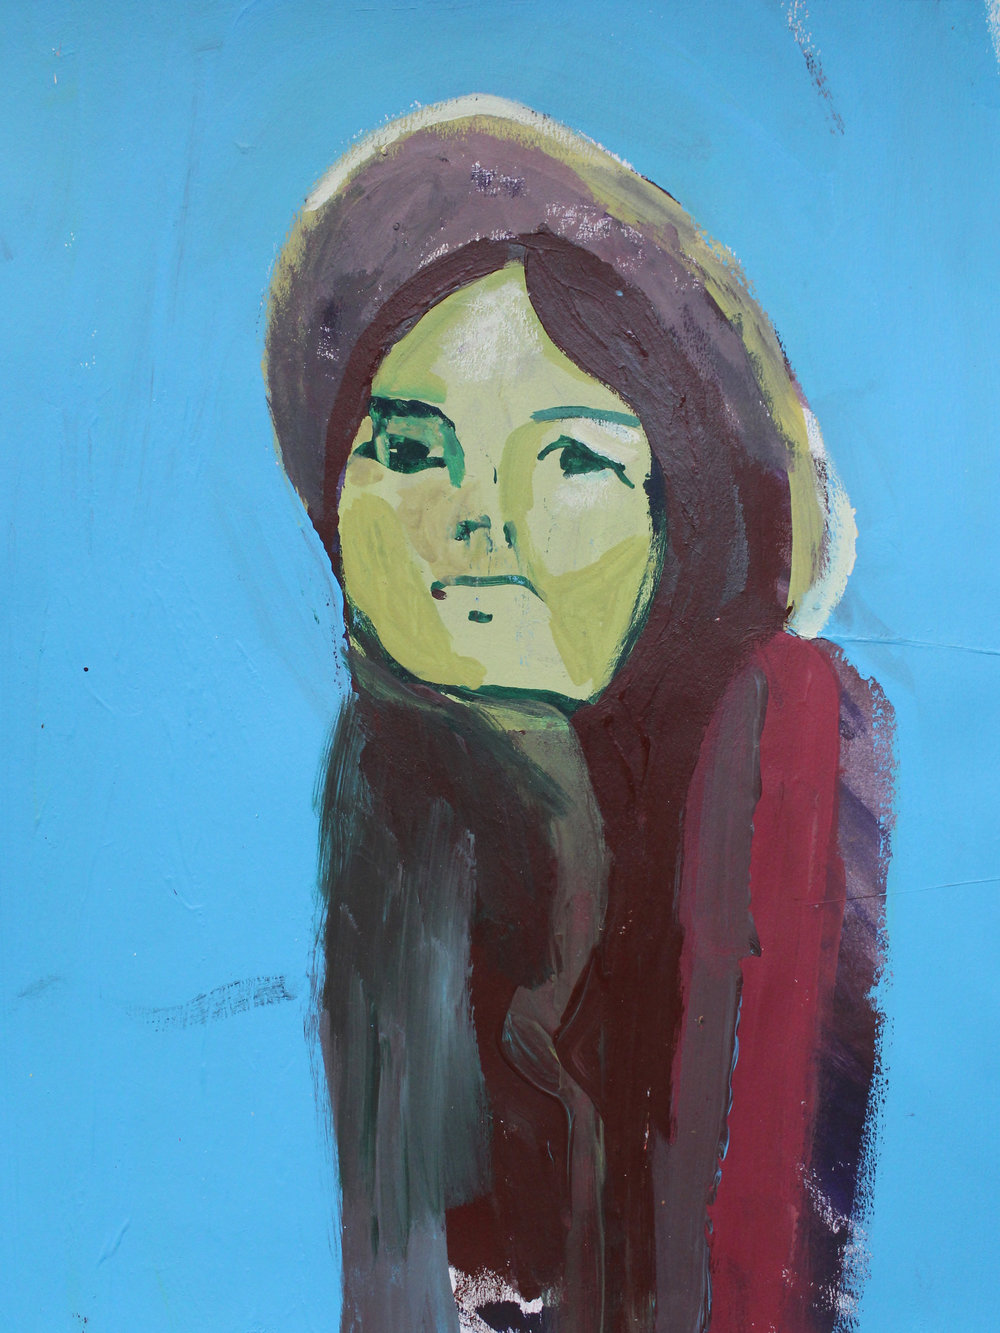 "Girl In Blue   acrylic on paper  12"" x 8 3/4""  2018   Available through The Red Arrow Gallery, Nashville, TN"